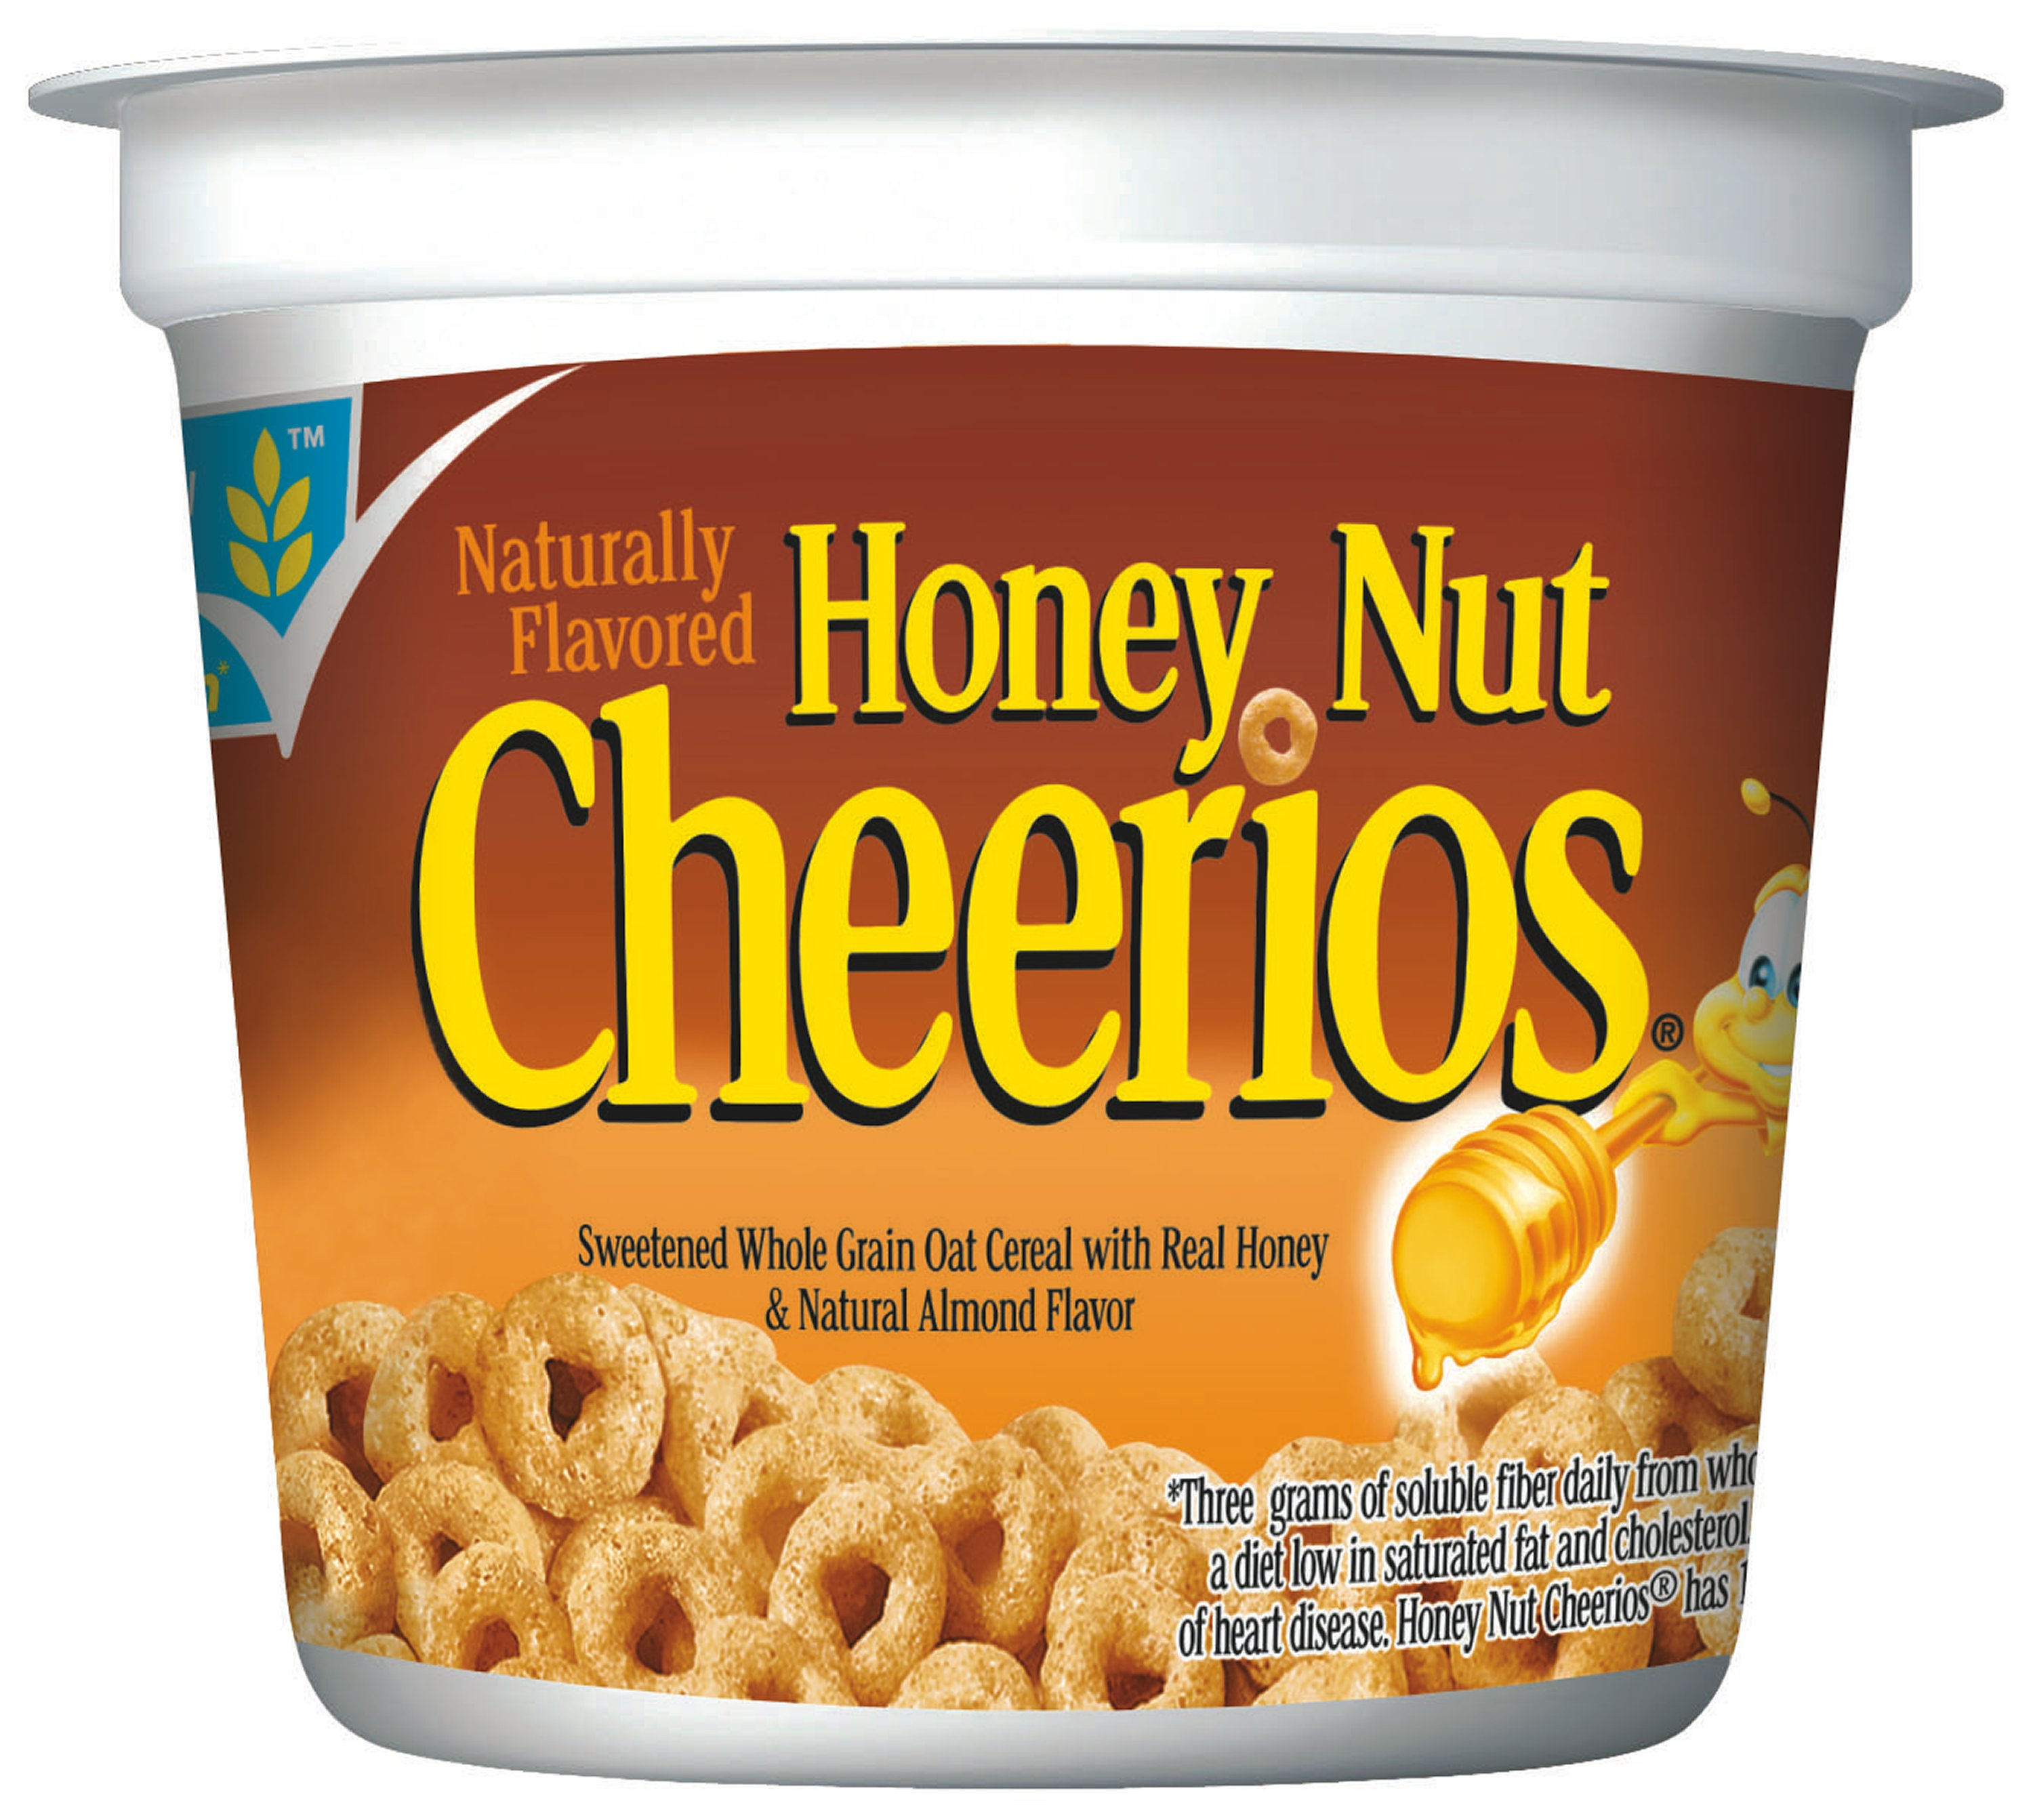 honey nut cheerios™ cup cereal 6ct | general mills convenience and